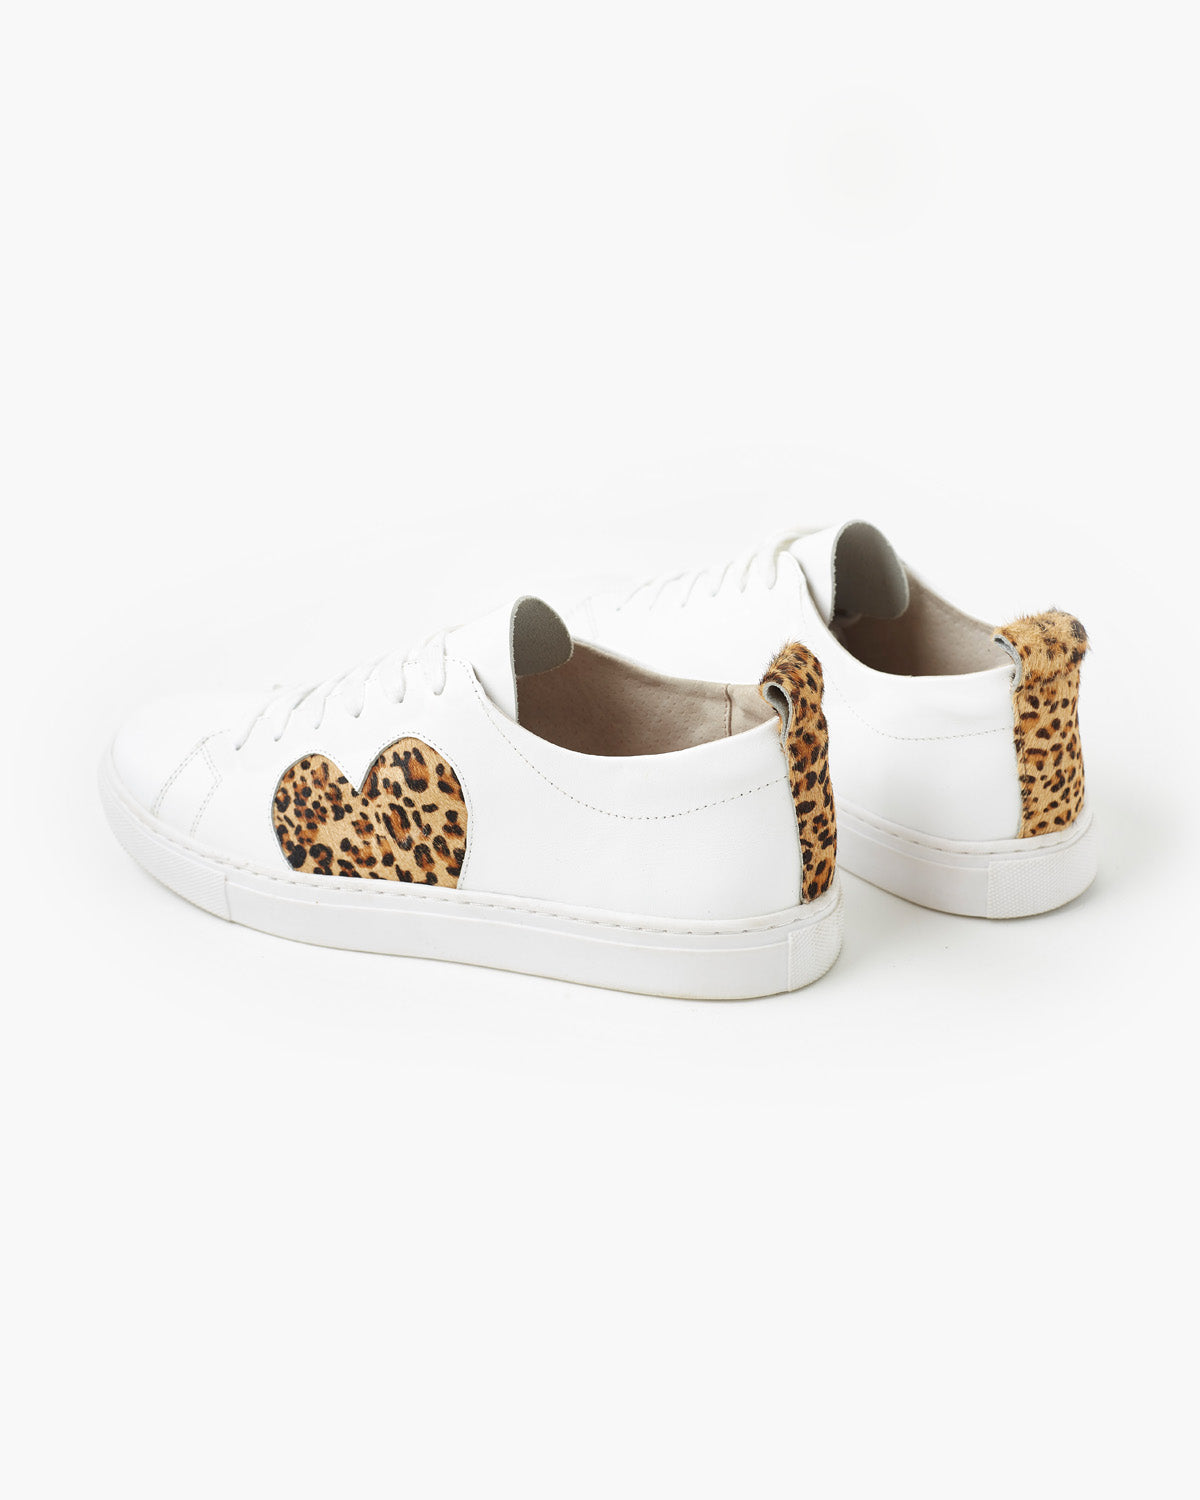 Heart Leather Sneaker - Leopard Pony